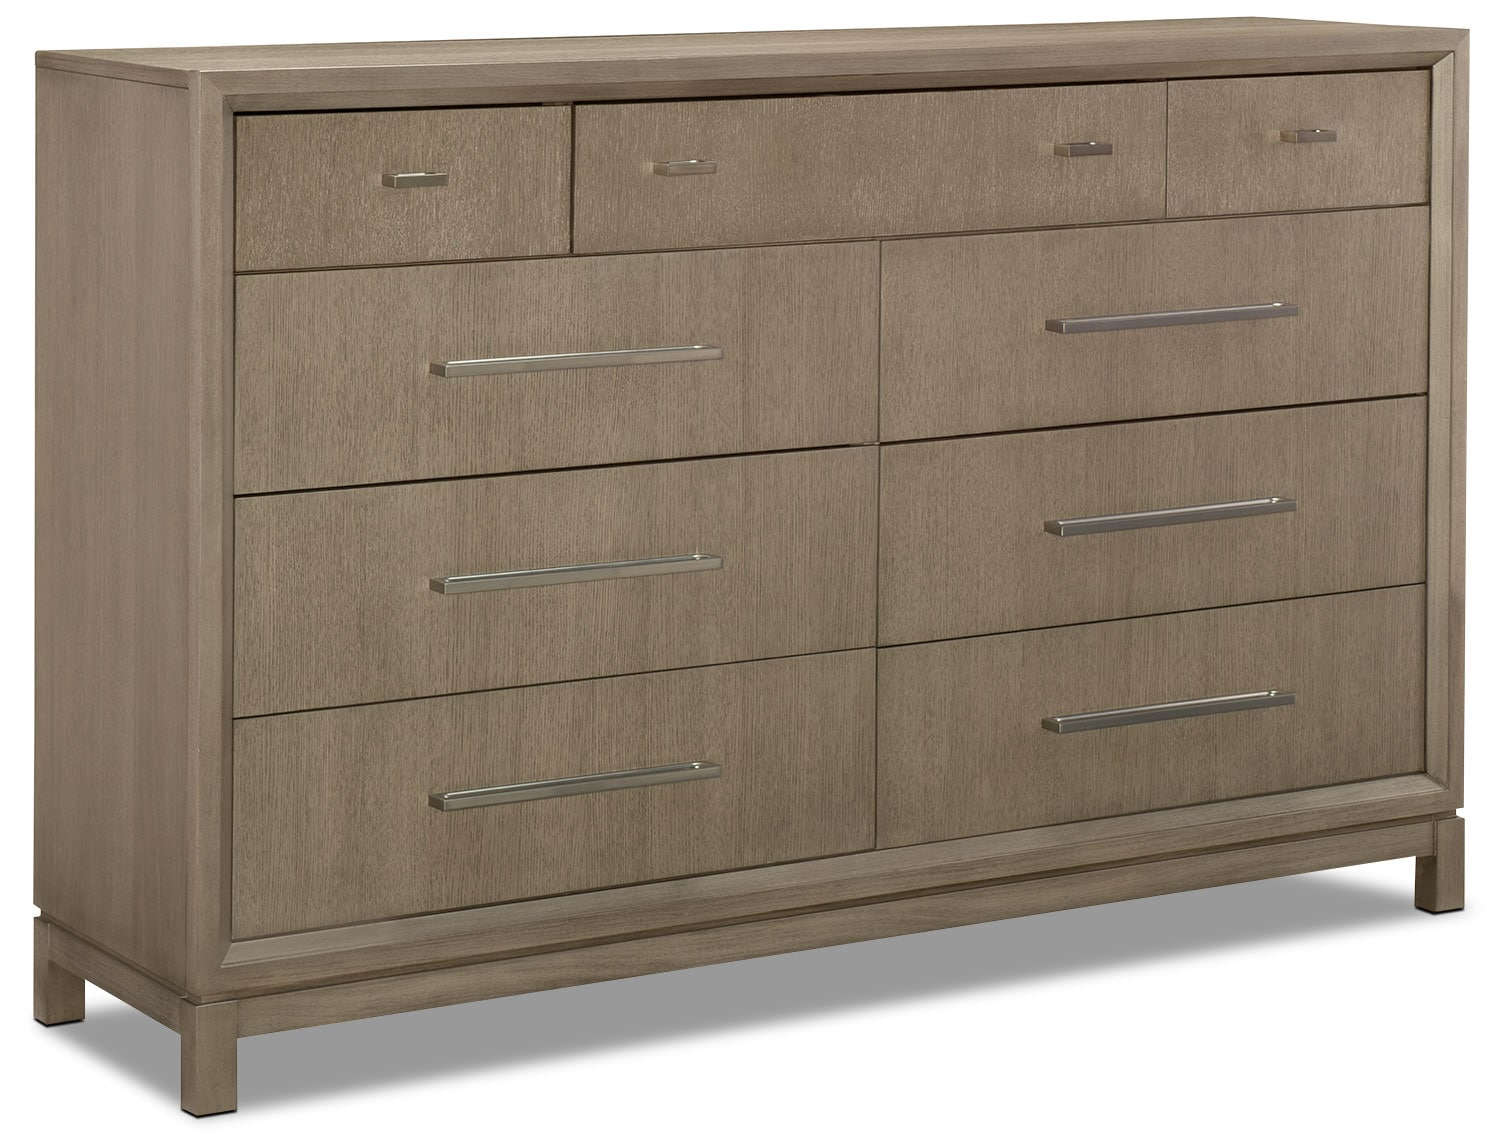 Bedroom Furniture - Rachael Ray Highline Dresser - Greige